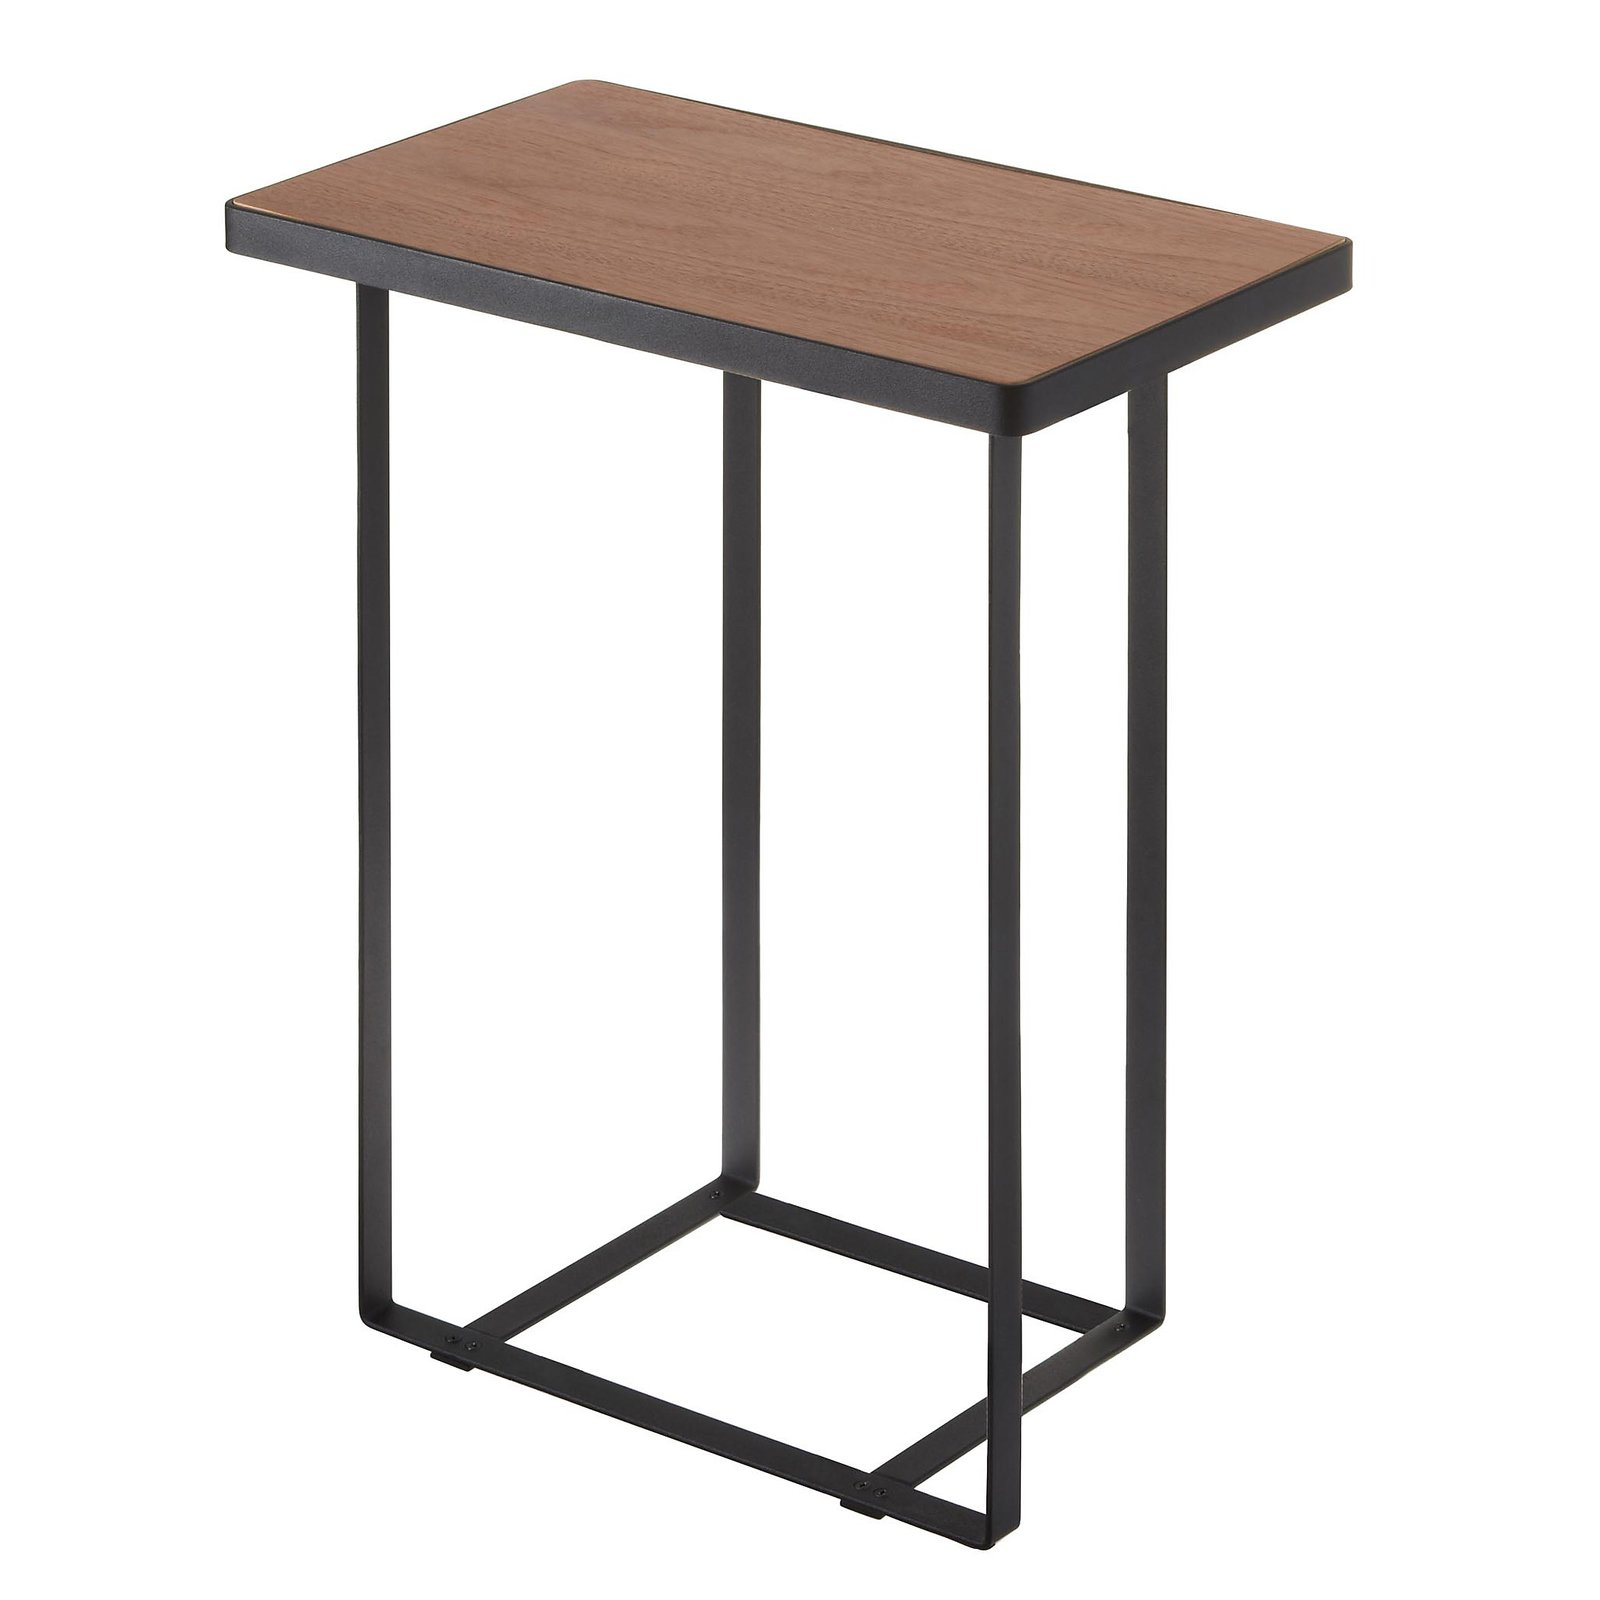 tower accent table huckberry dwell large knurl nesting tables silver coffee set plastic garden storage boxes black and cherry outdoor kitchen grill small deck chairs sofa trestle